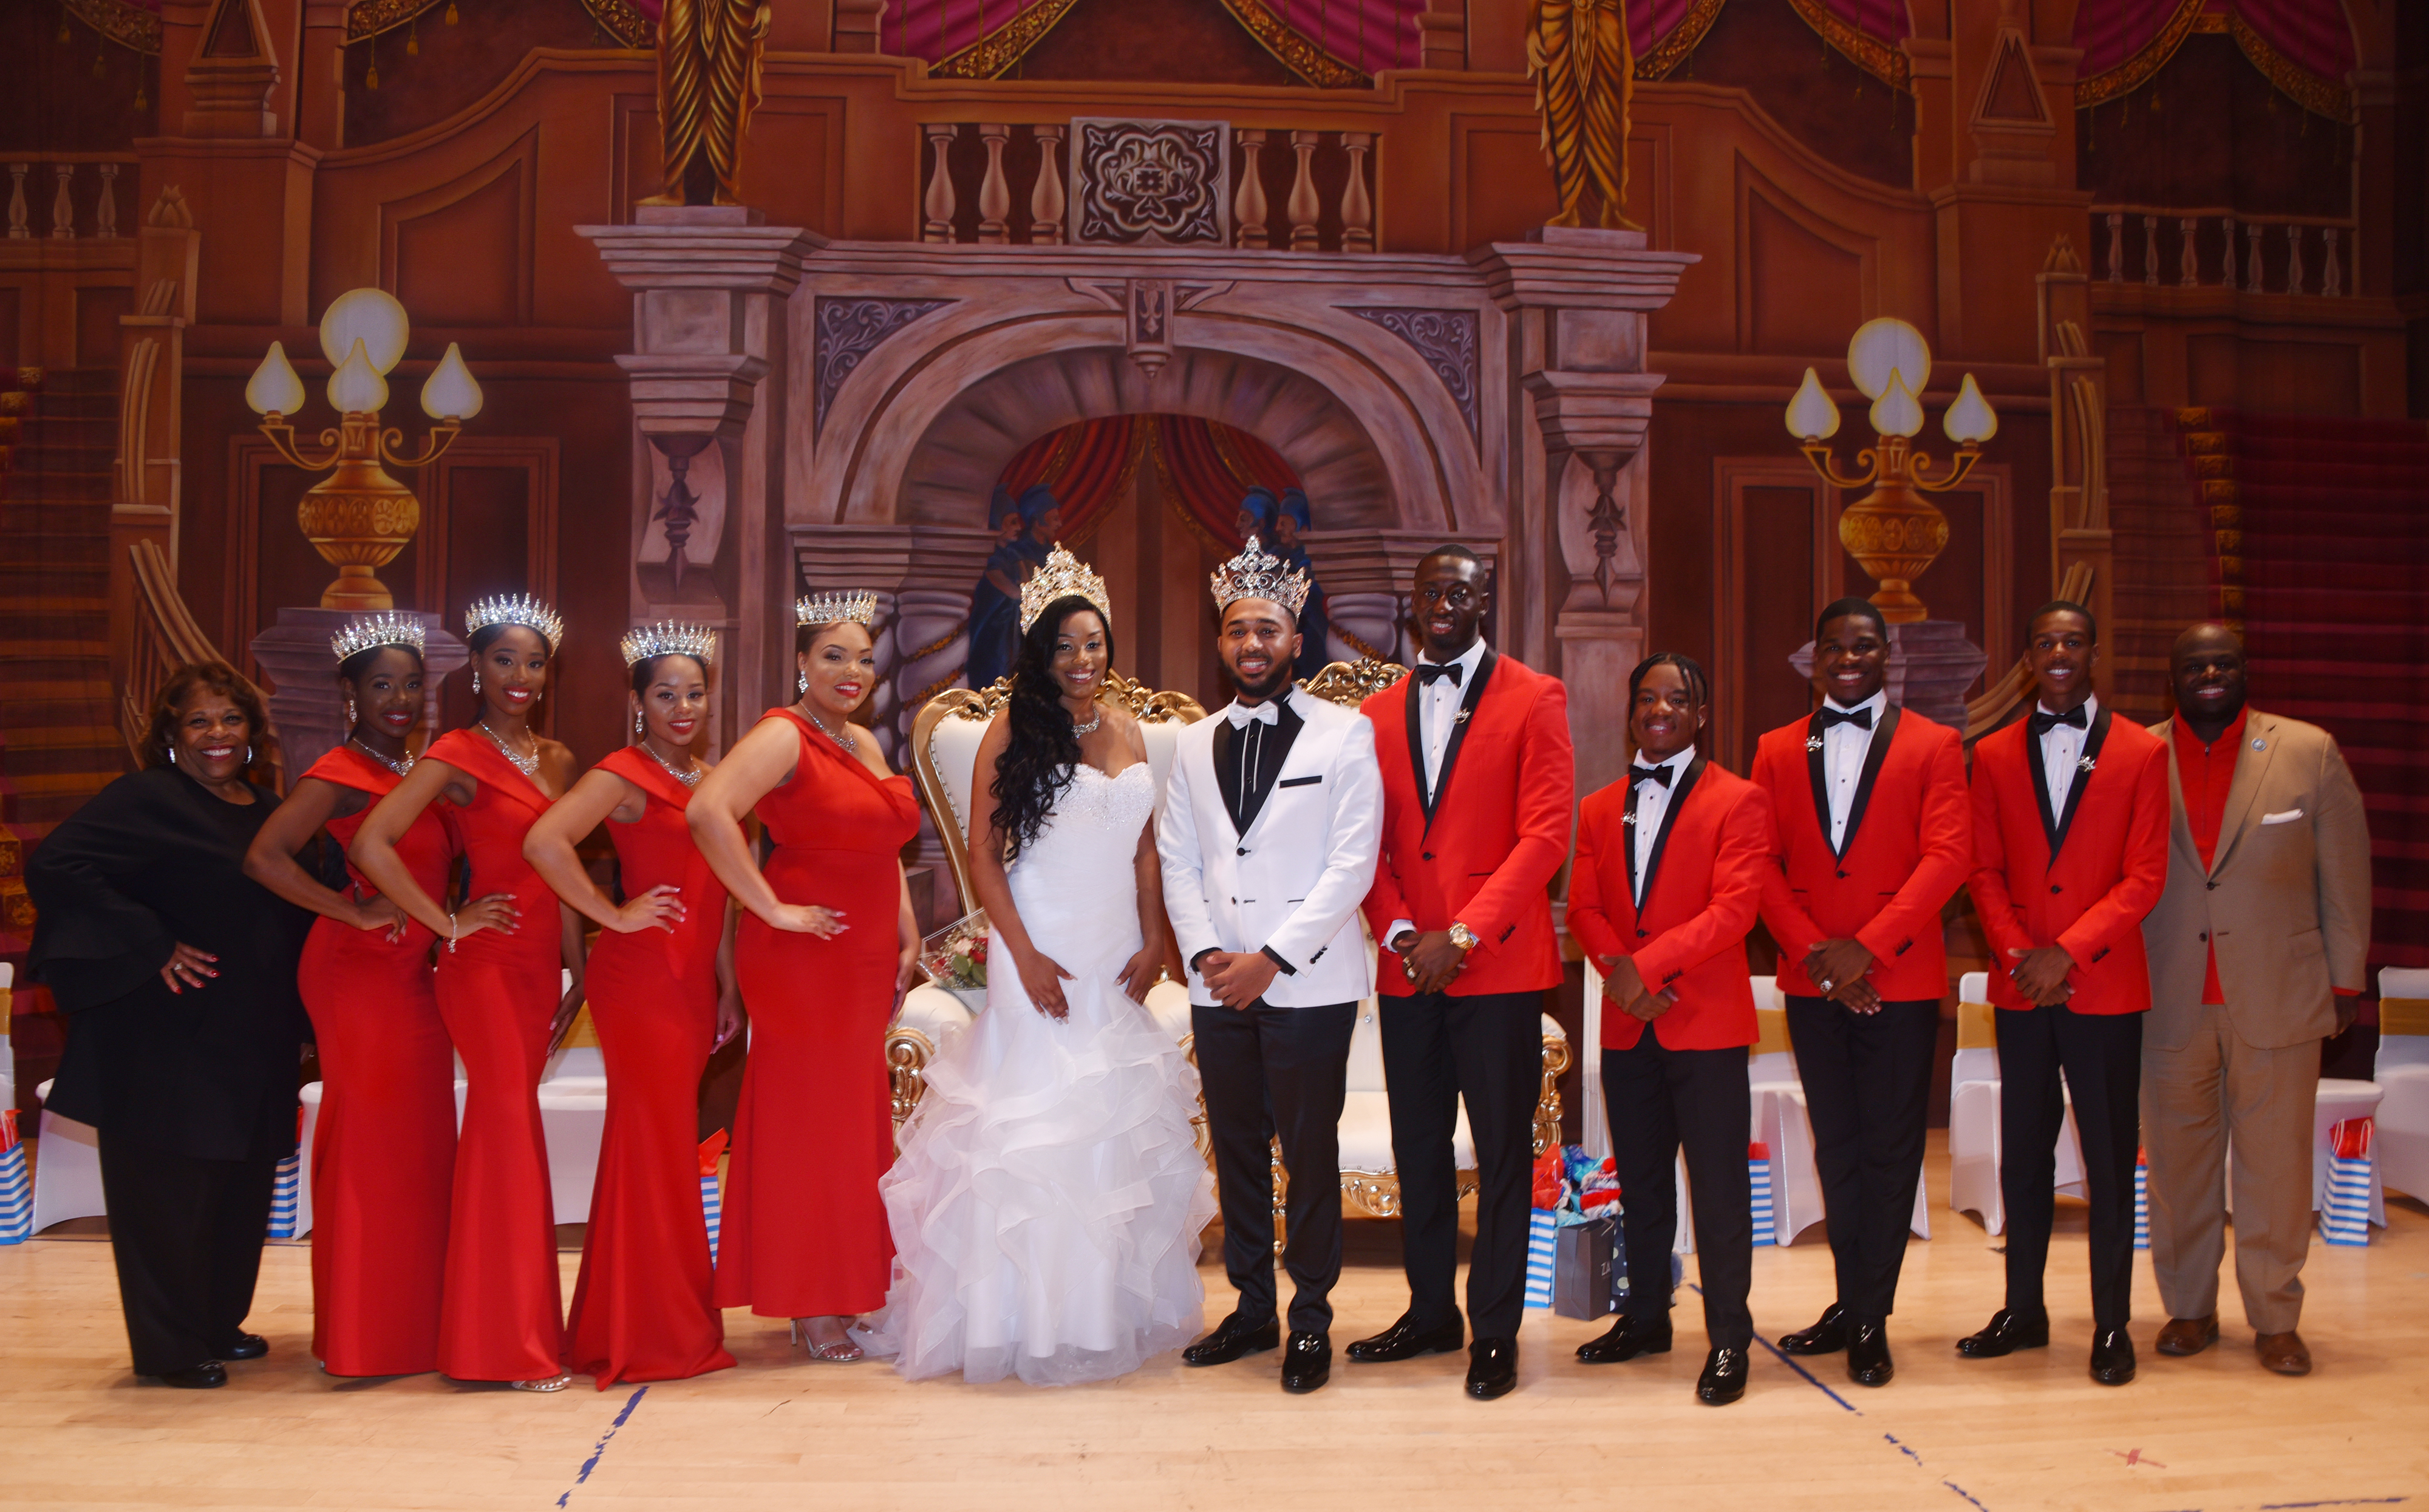 2019 Mr And Miss Dsu Crowned | Delaware State University Within Delaware State University Holiday Schedule